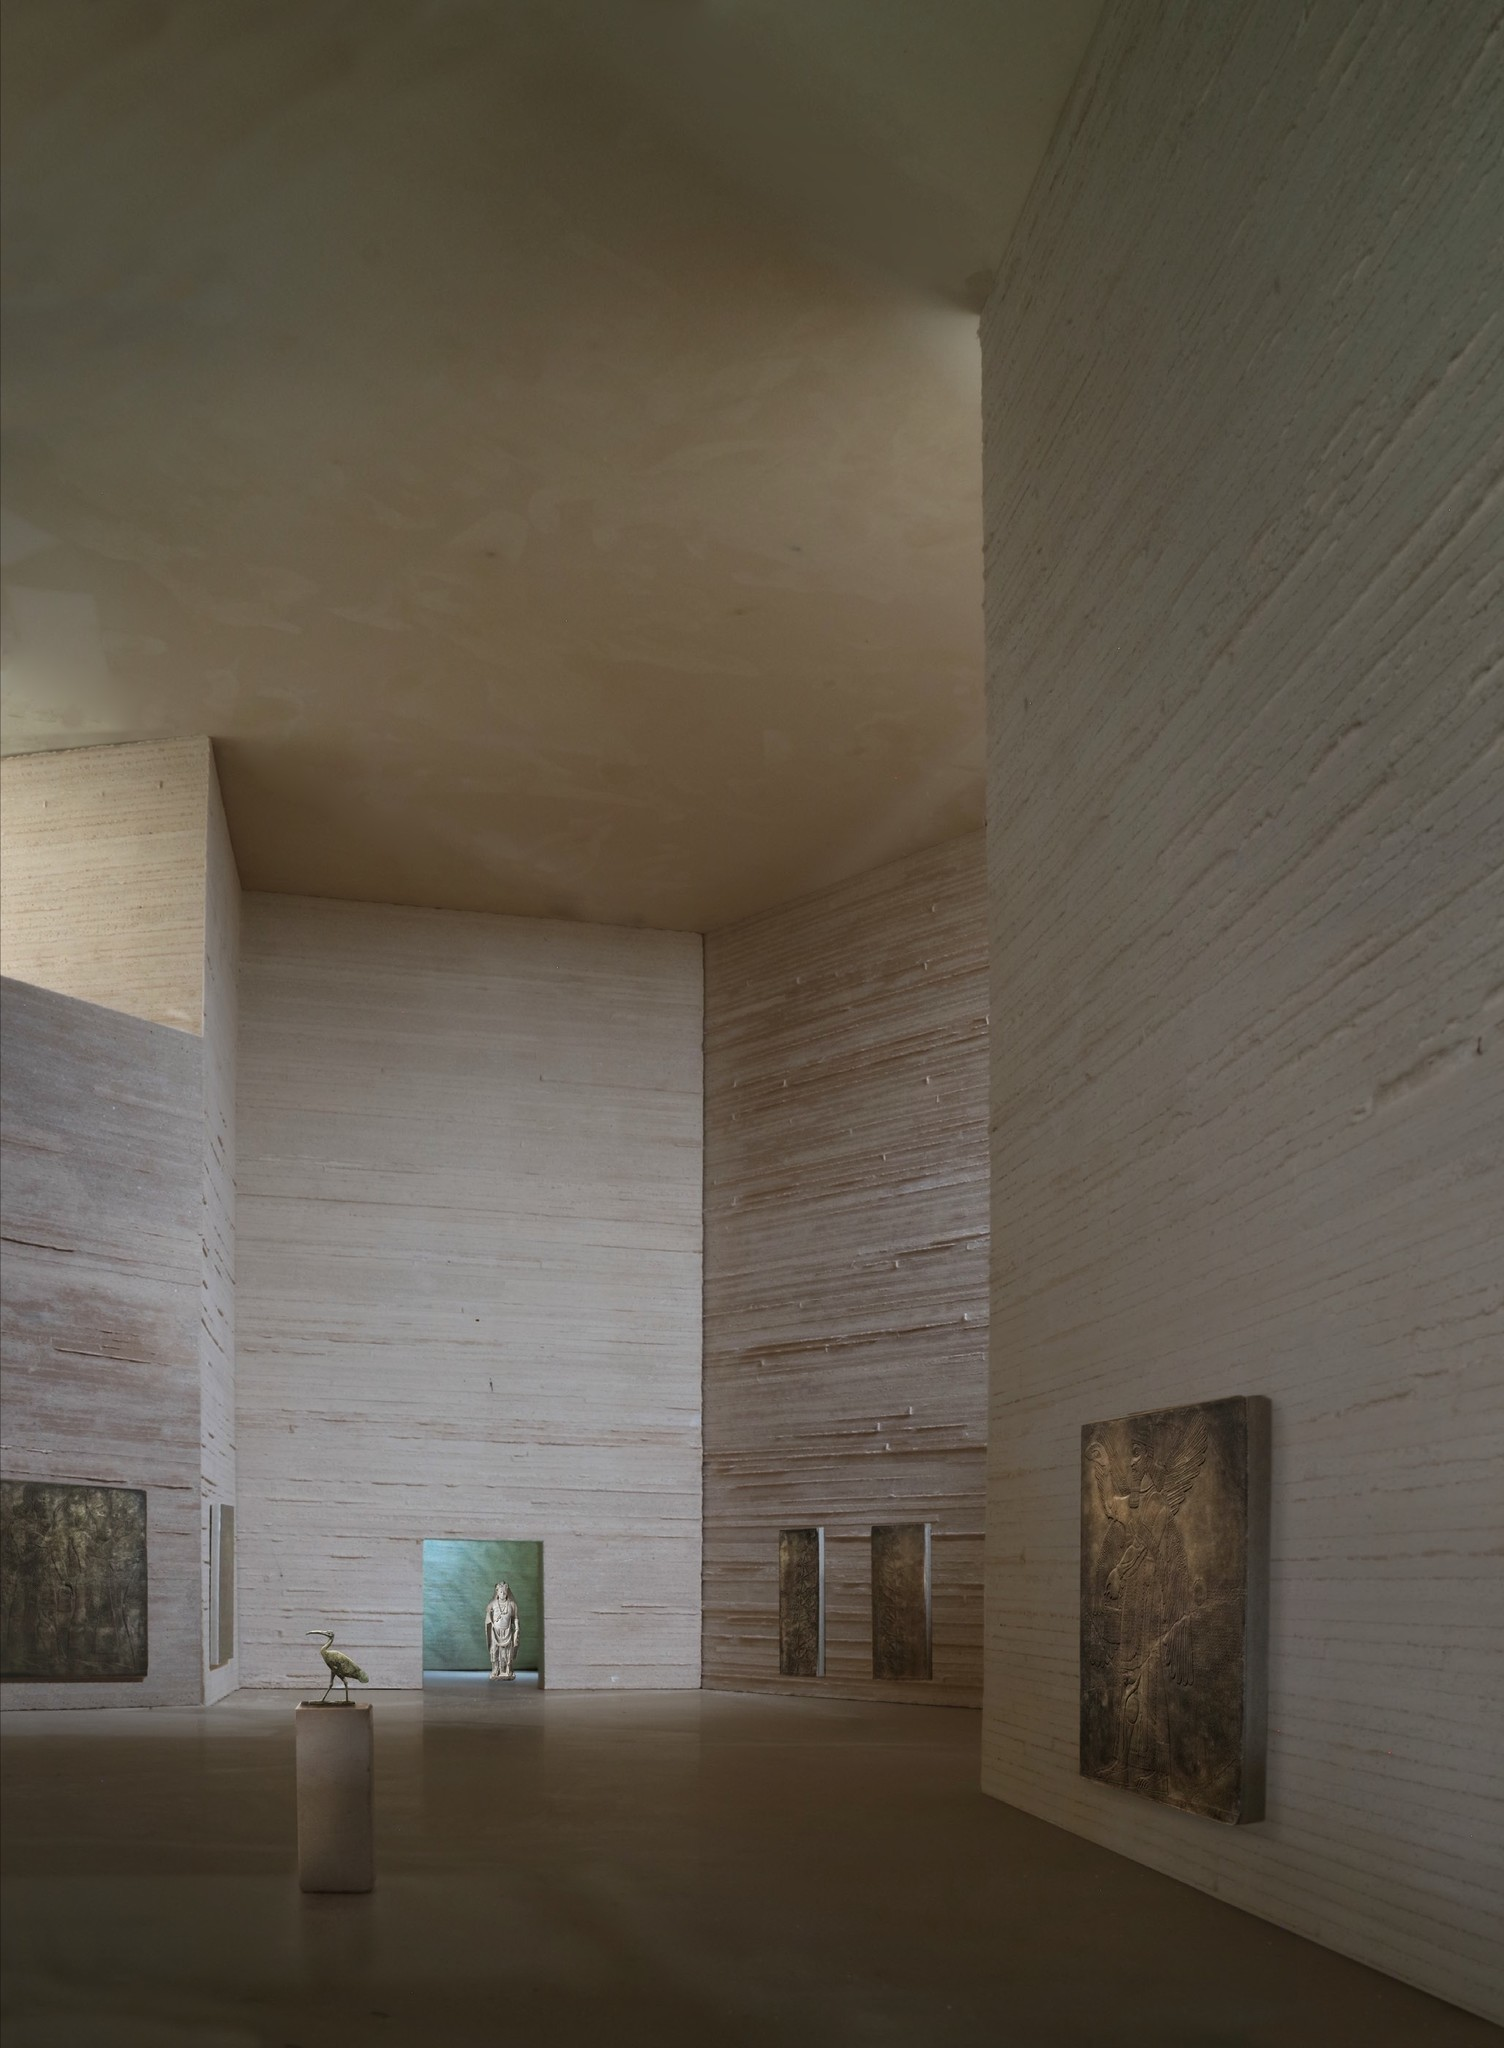 Installation of LACMA's permanent collection will not be guided solely by geography and chronology.